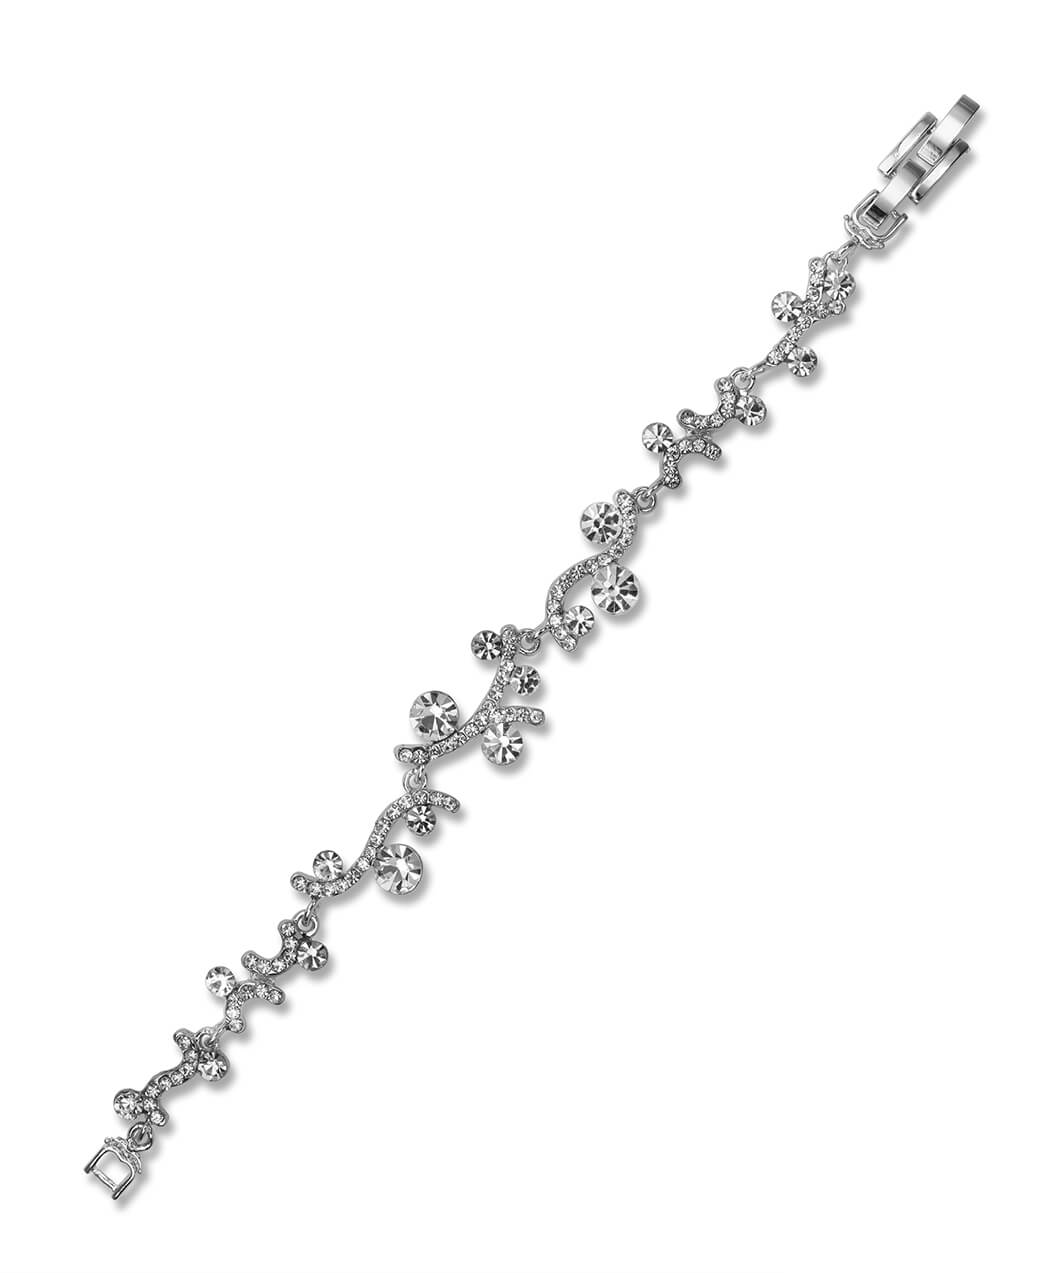 Solid 925 Sterling Silver FW Cultured Pearl /& CZ Cubic Zirconia Forever 18in Neck Embrace 13mm x 18mm